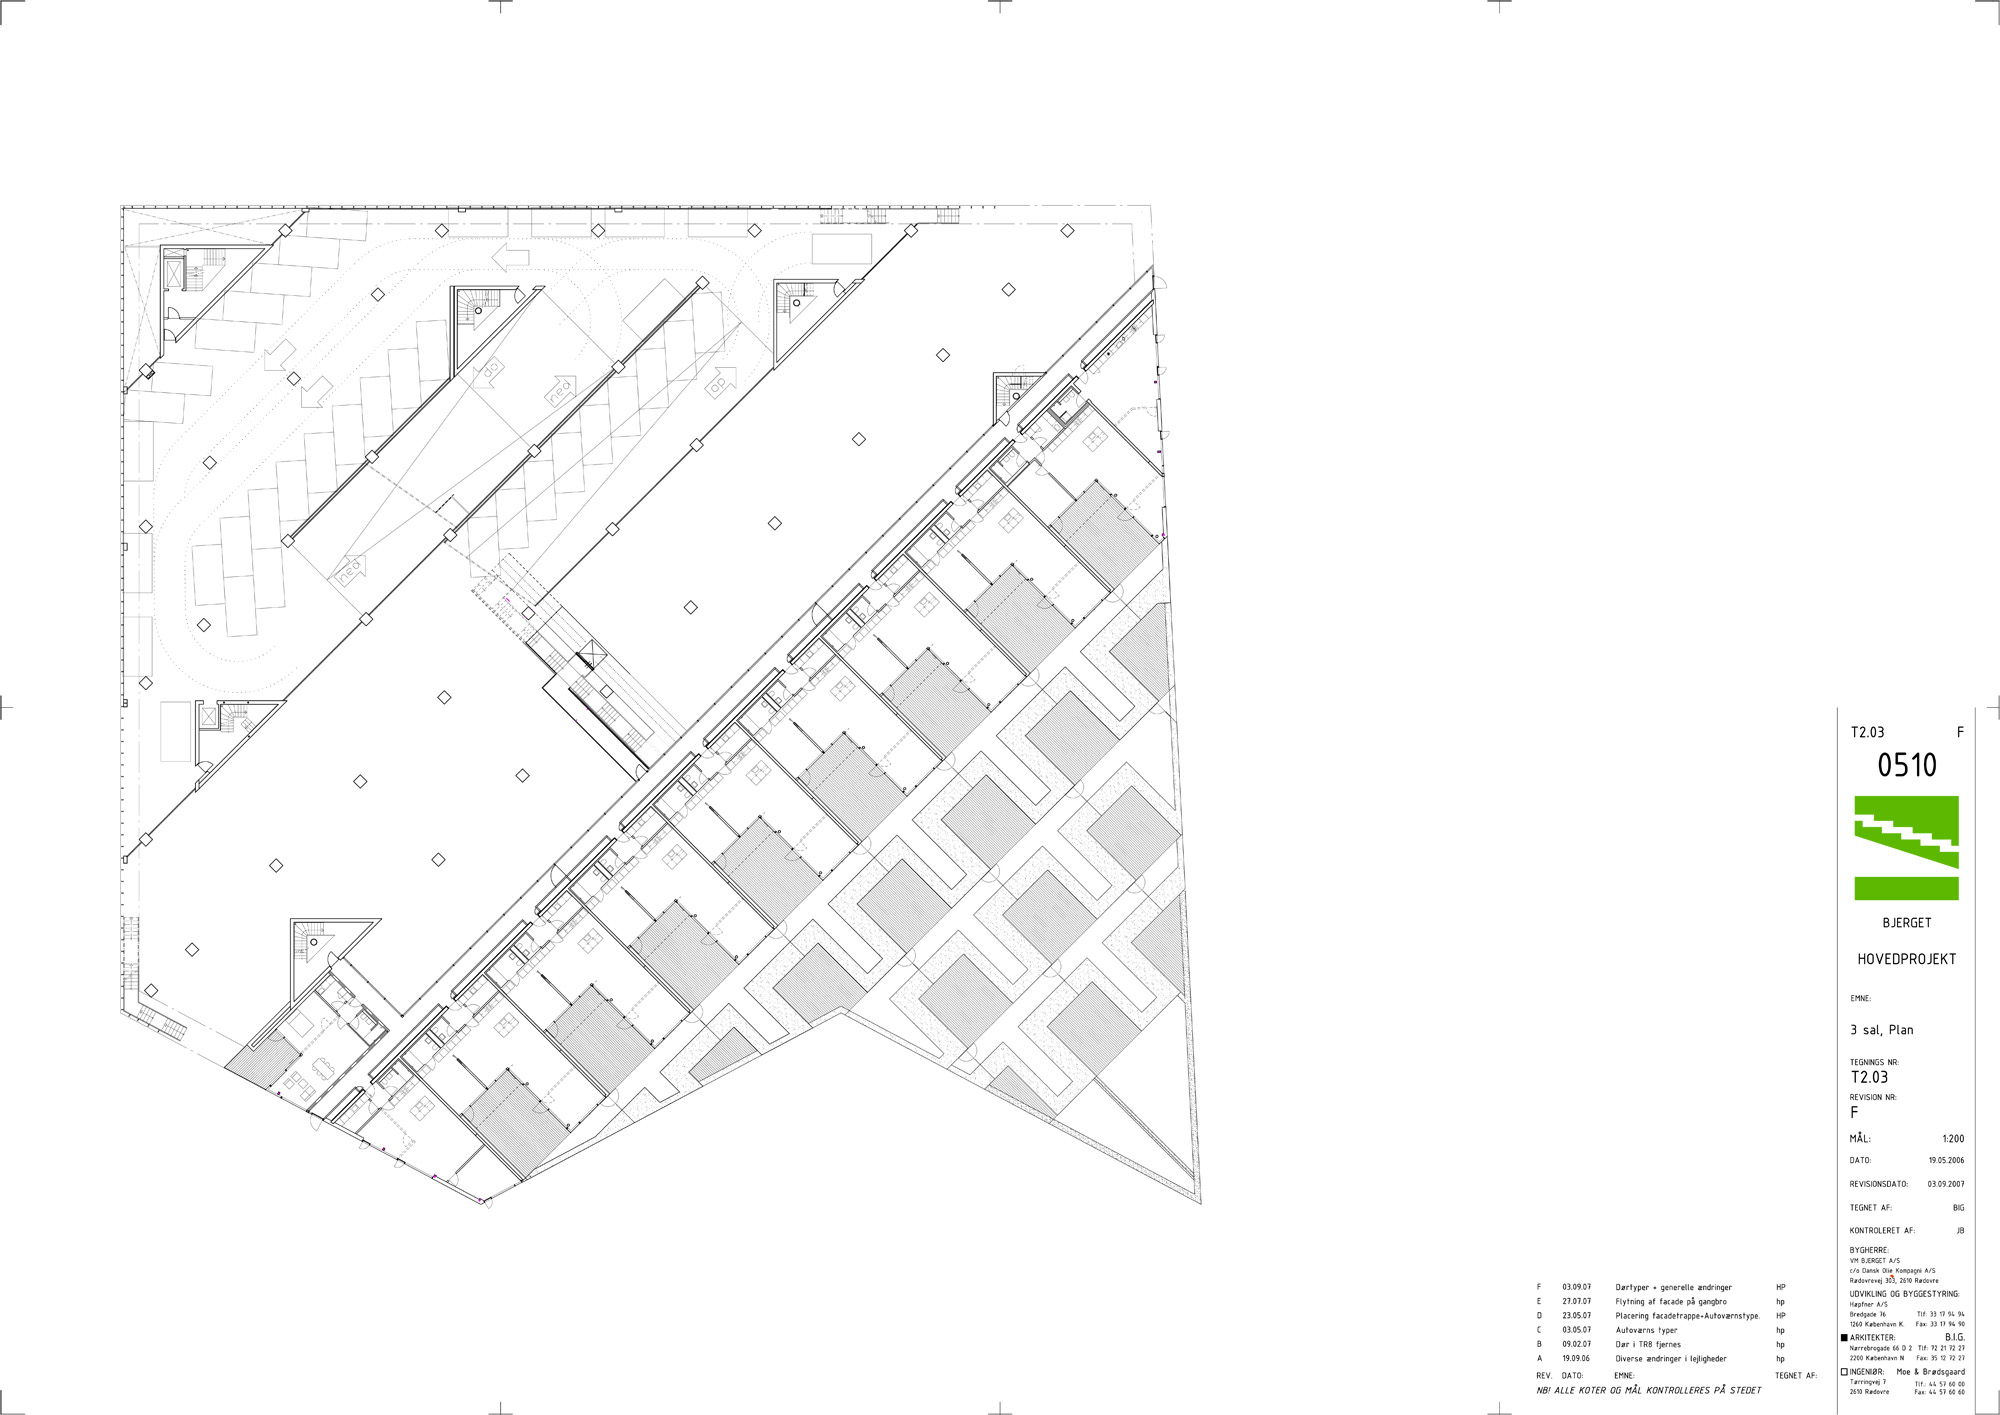 Architecture photography t2 03 3sal plan 1 15060 for Mountain architecture floor plans